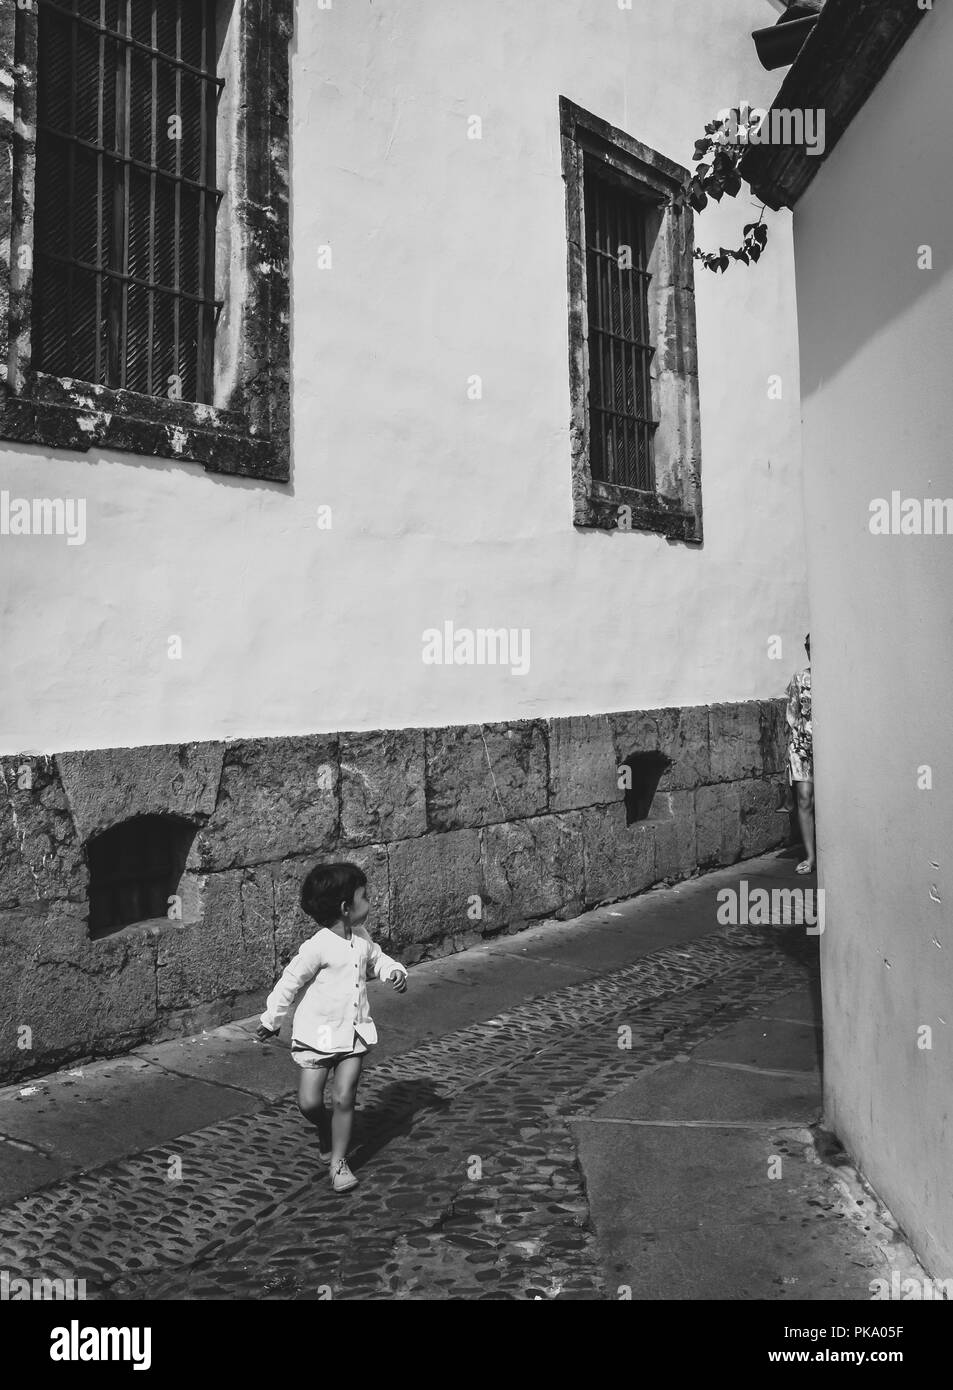 Cordoba/ Spain - 08/20/18 - Children running the old town area of Cordoba - Spain - Stock Image